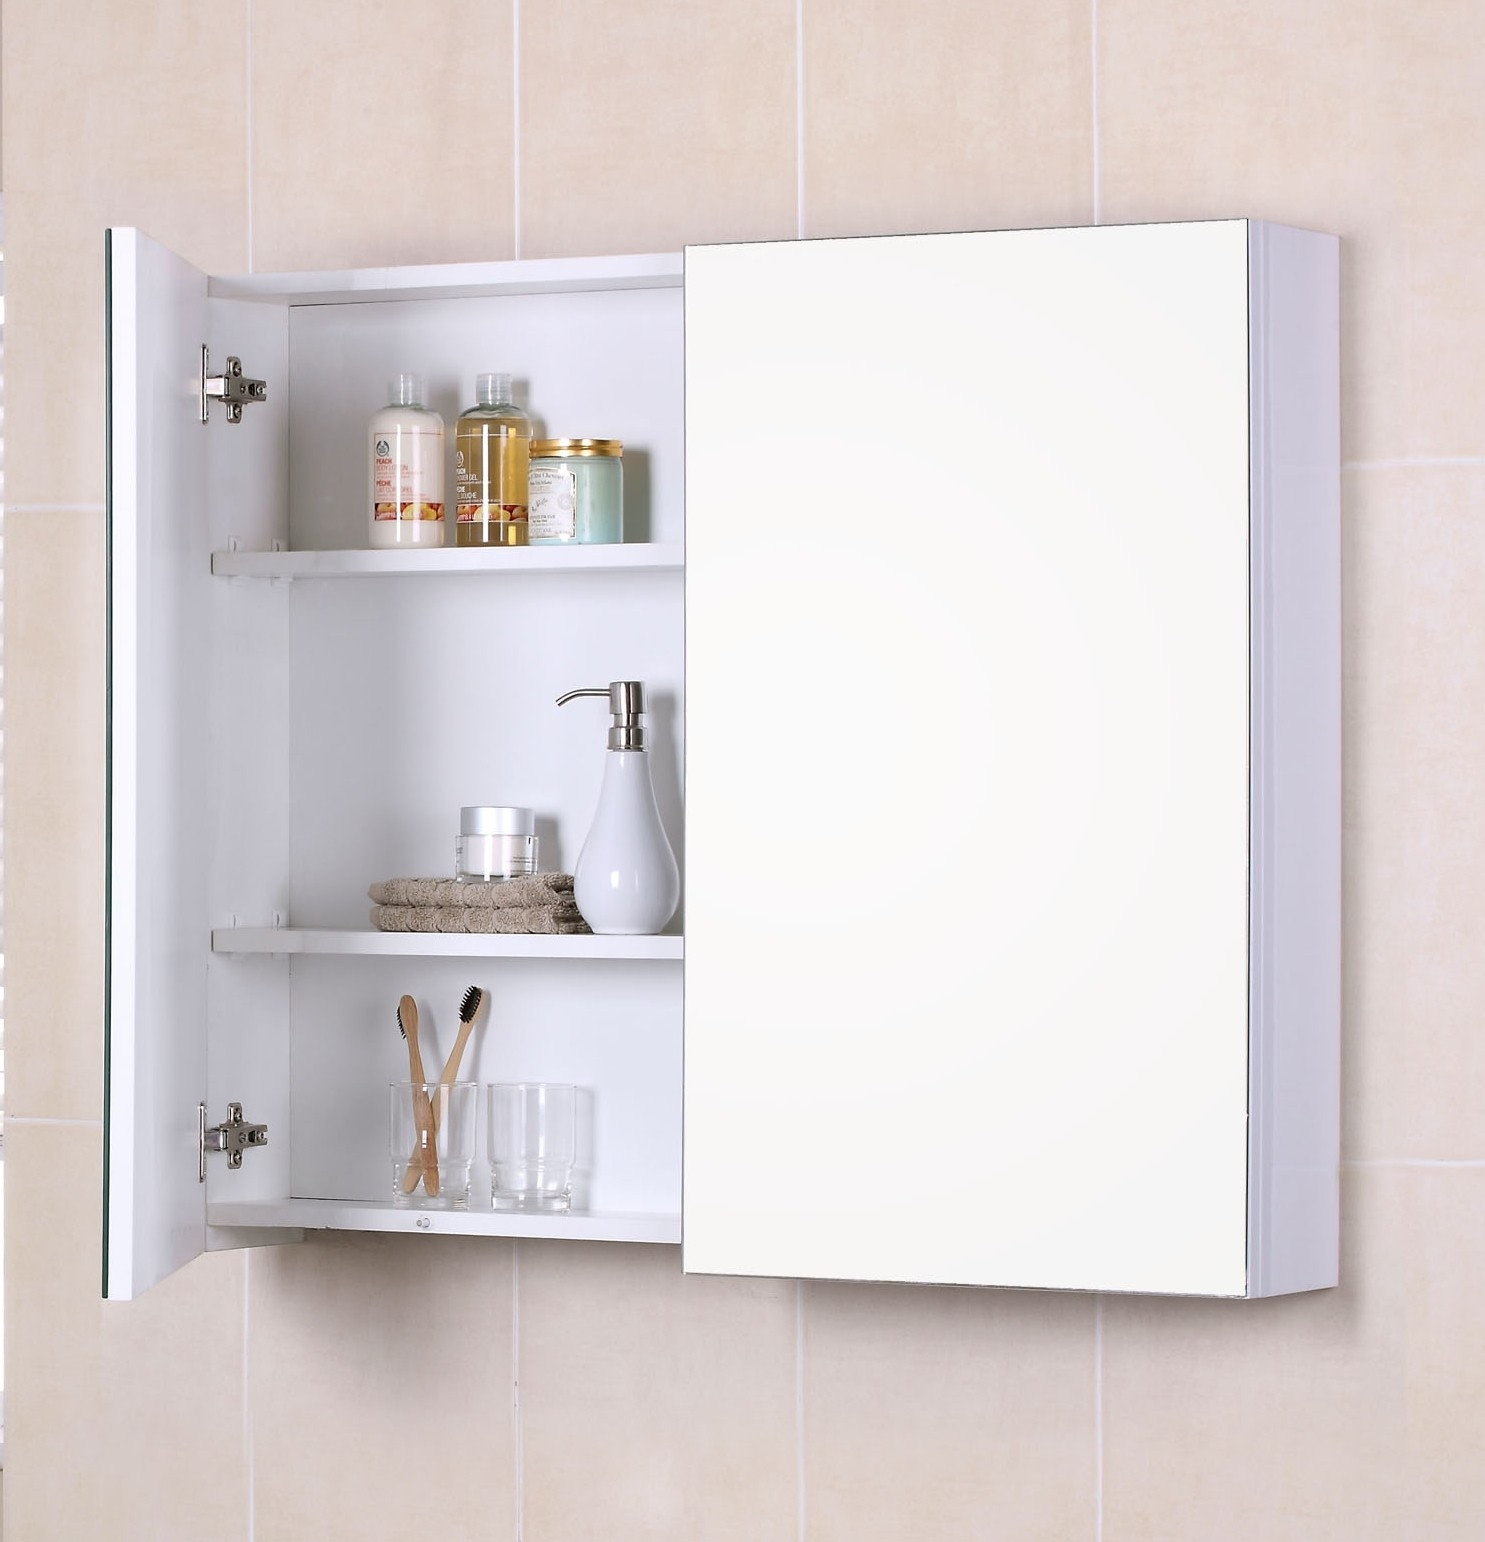 Bathroom Wall Cabinet With Mirrored Door And Shelves